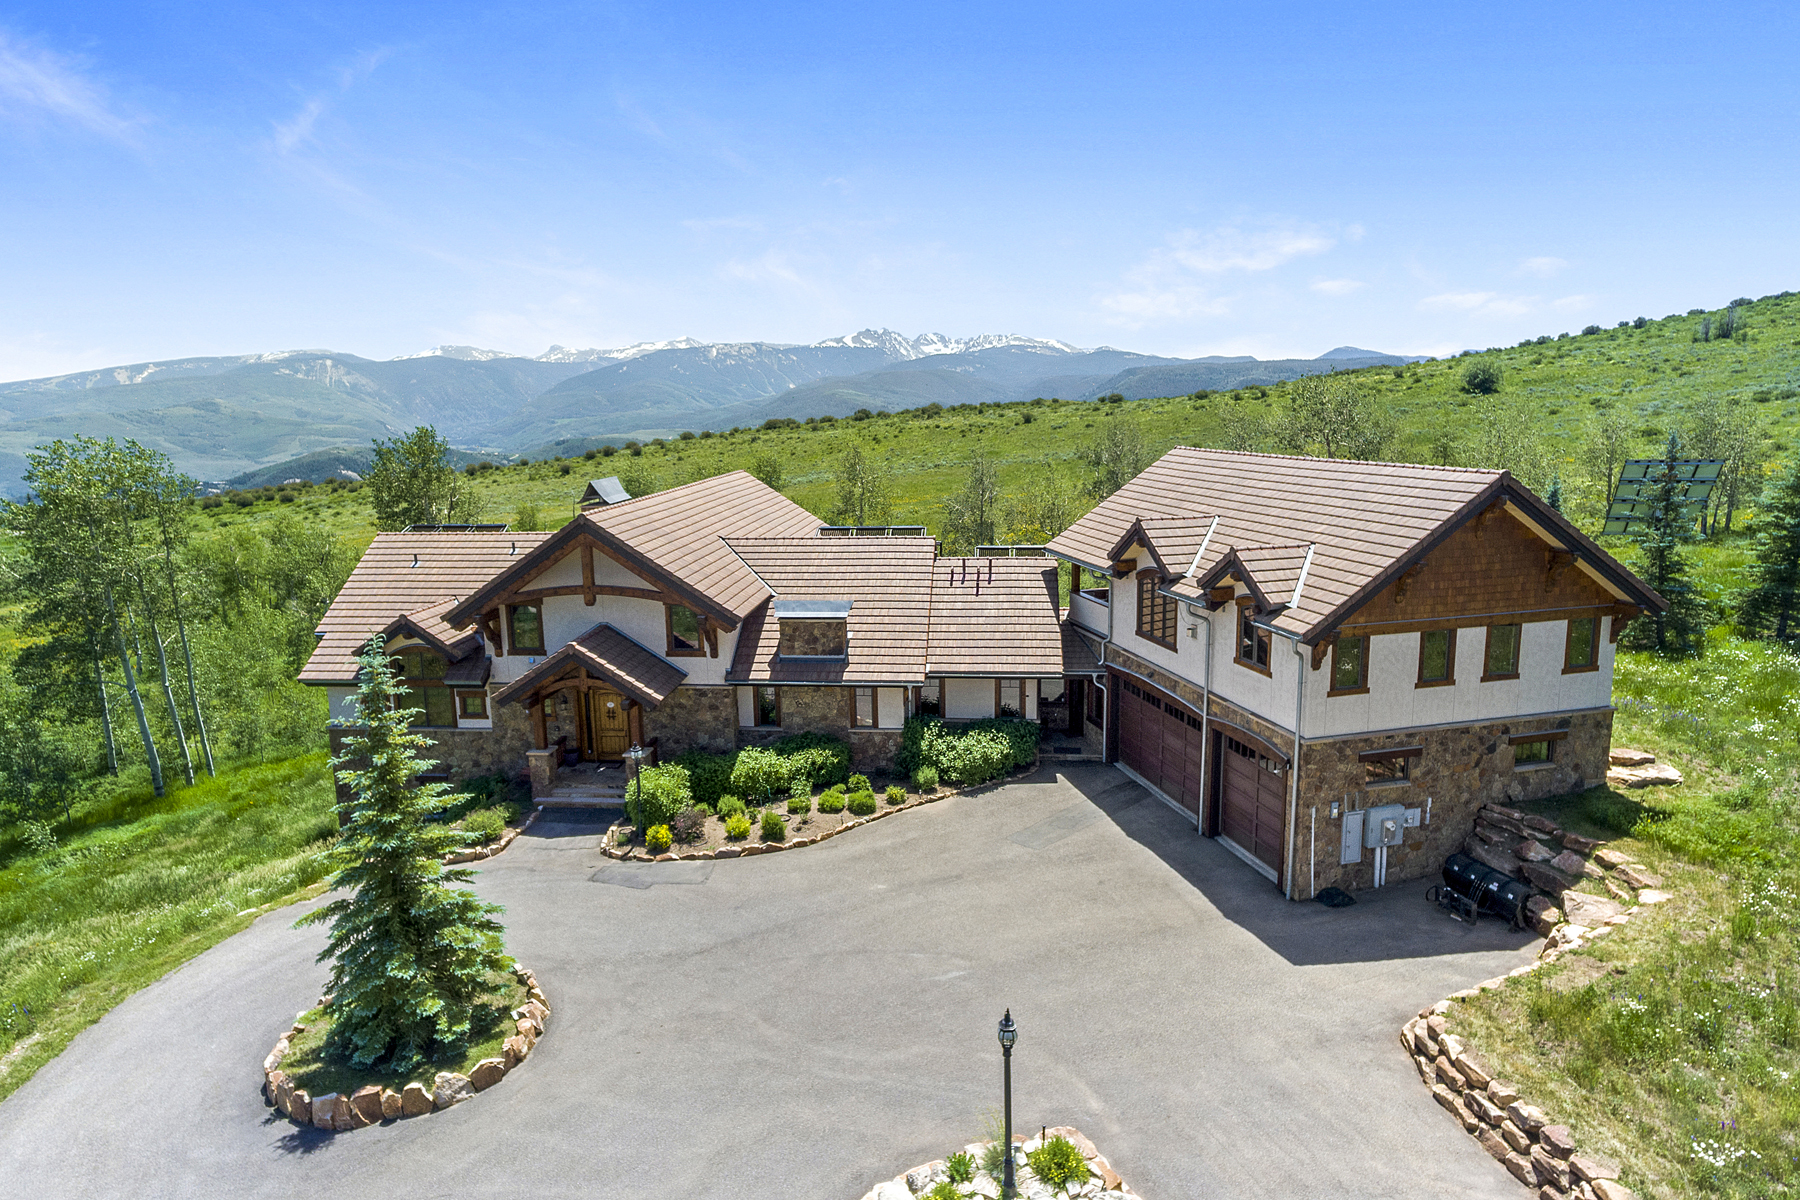 Single Family Homes for Active at Sweeping views plus acreage on Bellyache Ridge 5458 Bellyache Ridge Rd. Wolcott, Colorado 81655 United States